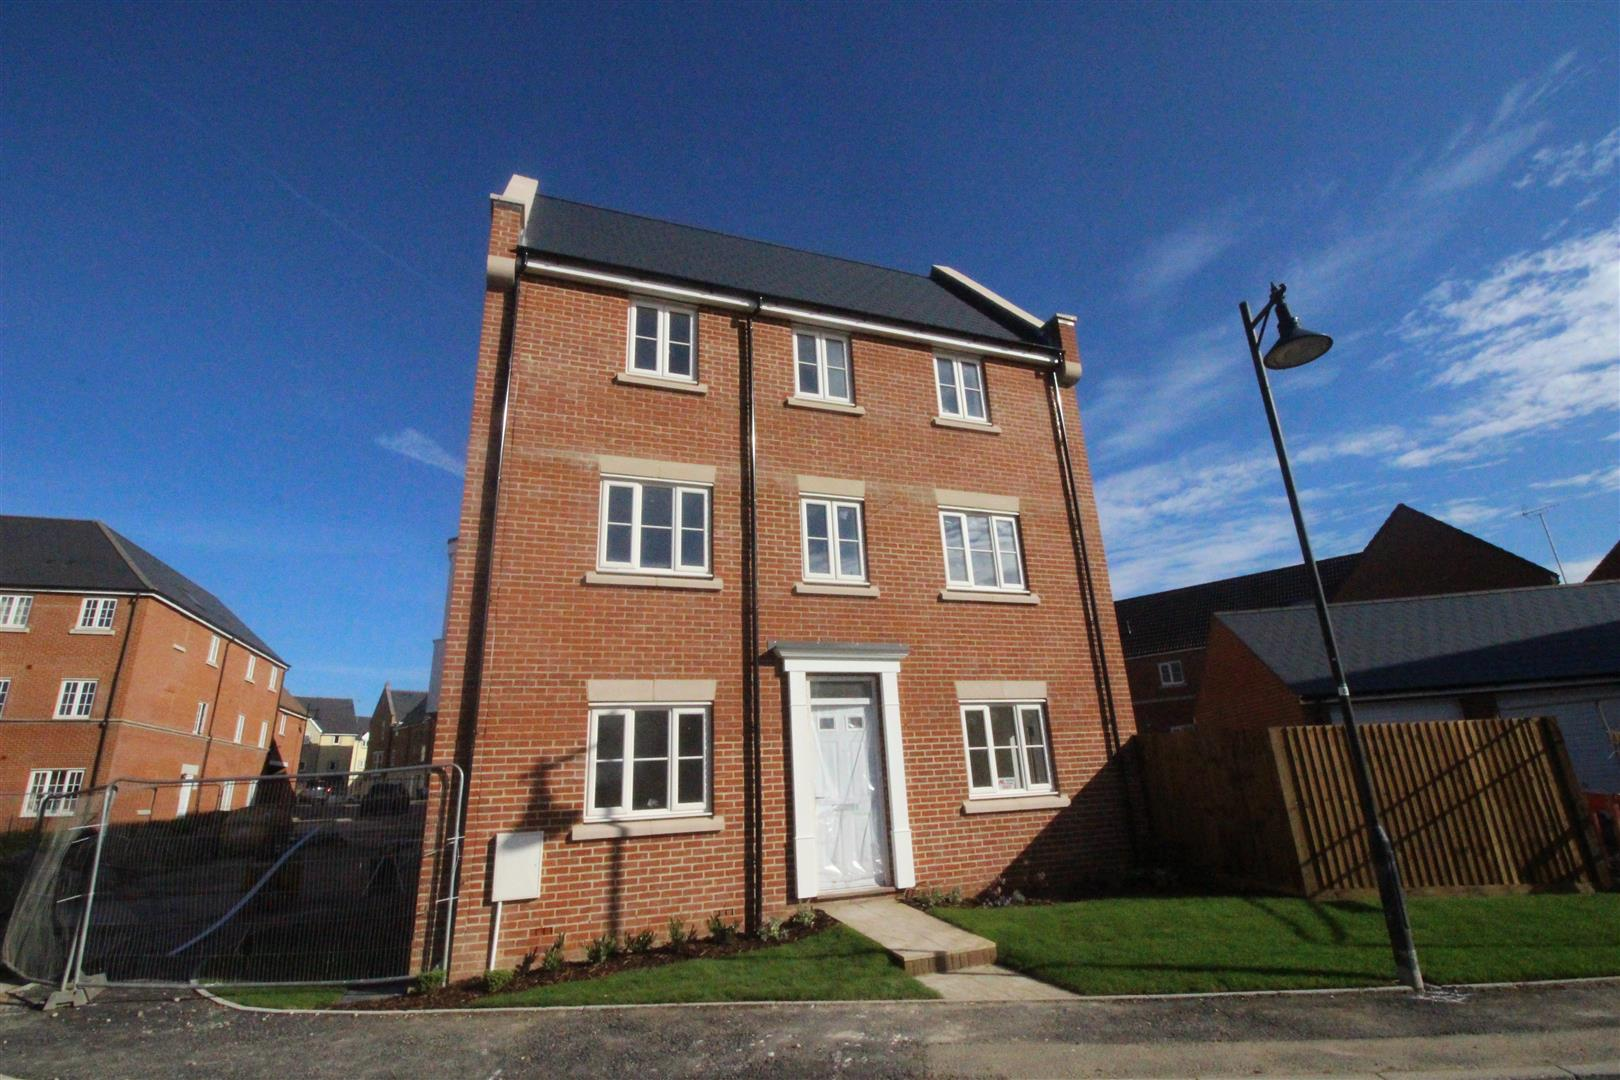 4 Bedrooms End Of Terrace House for sale in Dyson Road, Redhouse, Swindon